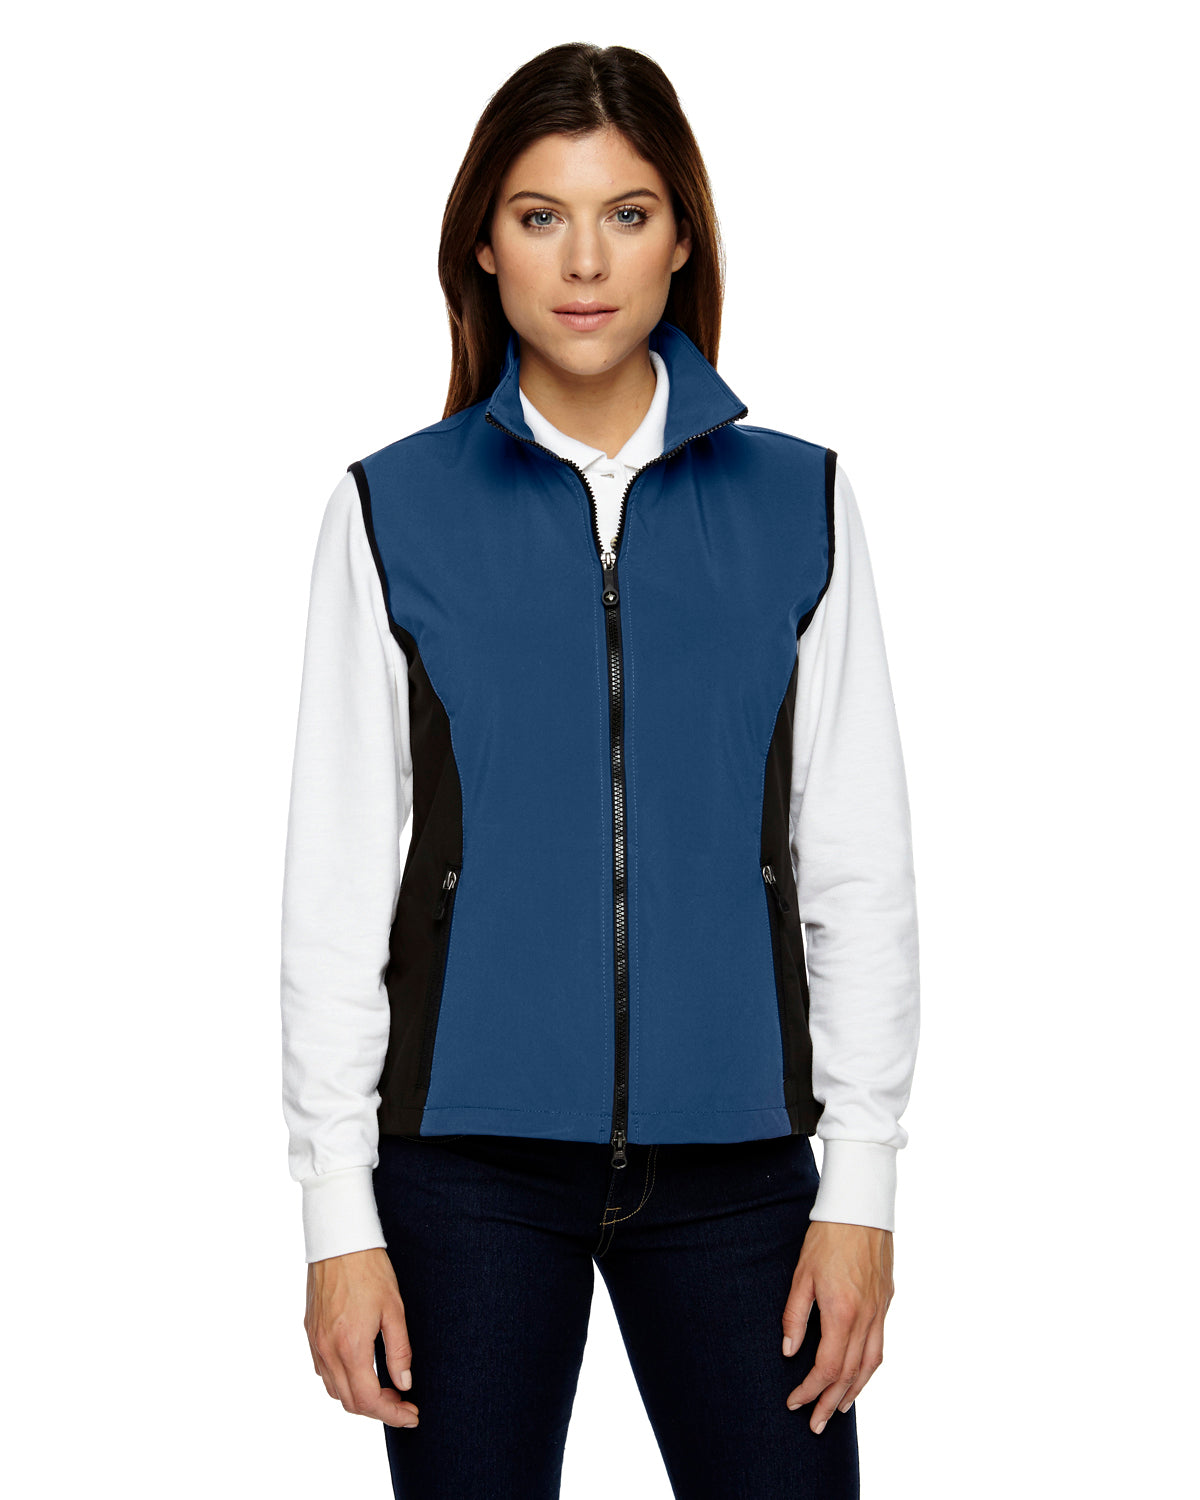 NORTH END LADIES THREE LAYER LIGHT BONDED PERFORMANCE SOFT SHELL VEST